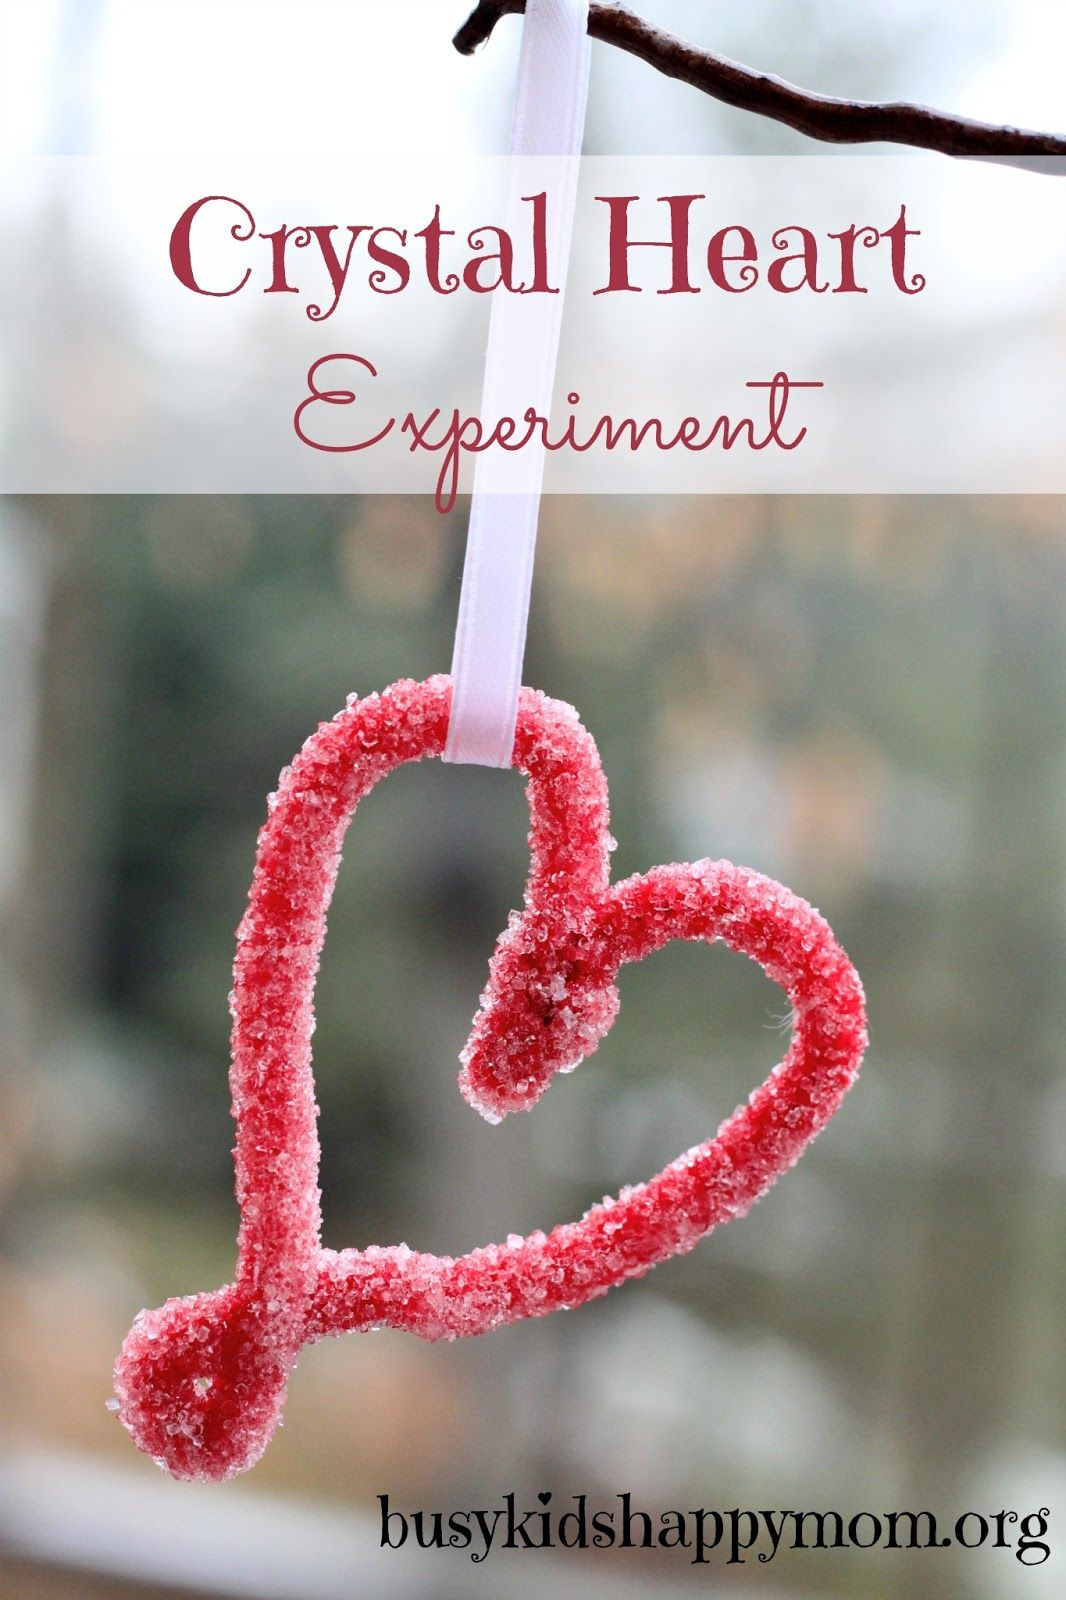 Diy Heart Crystals